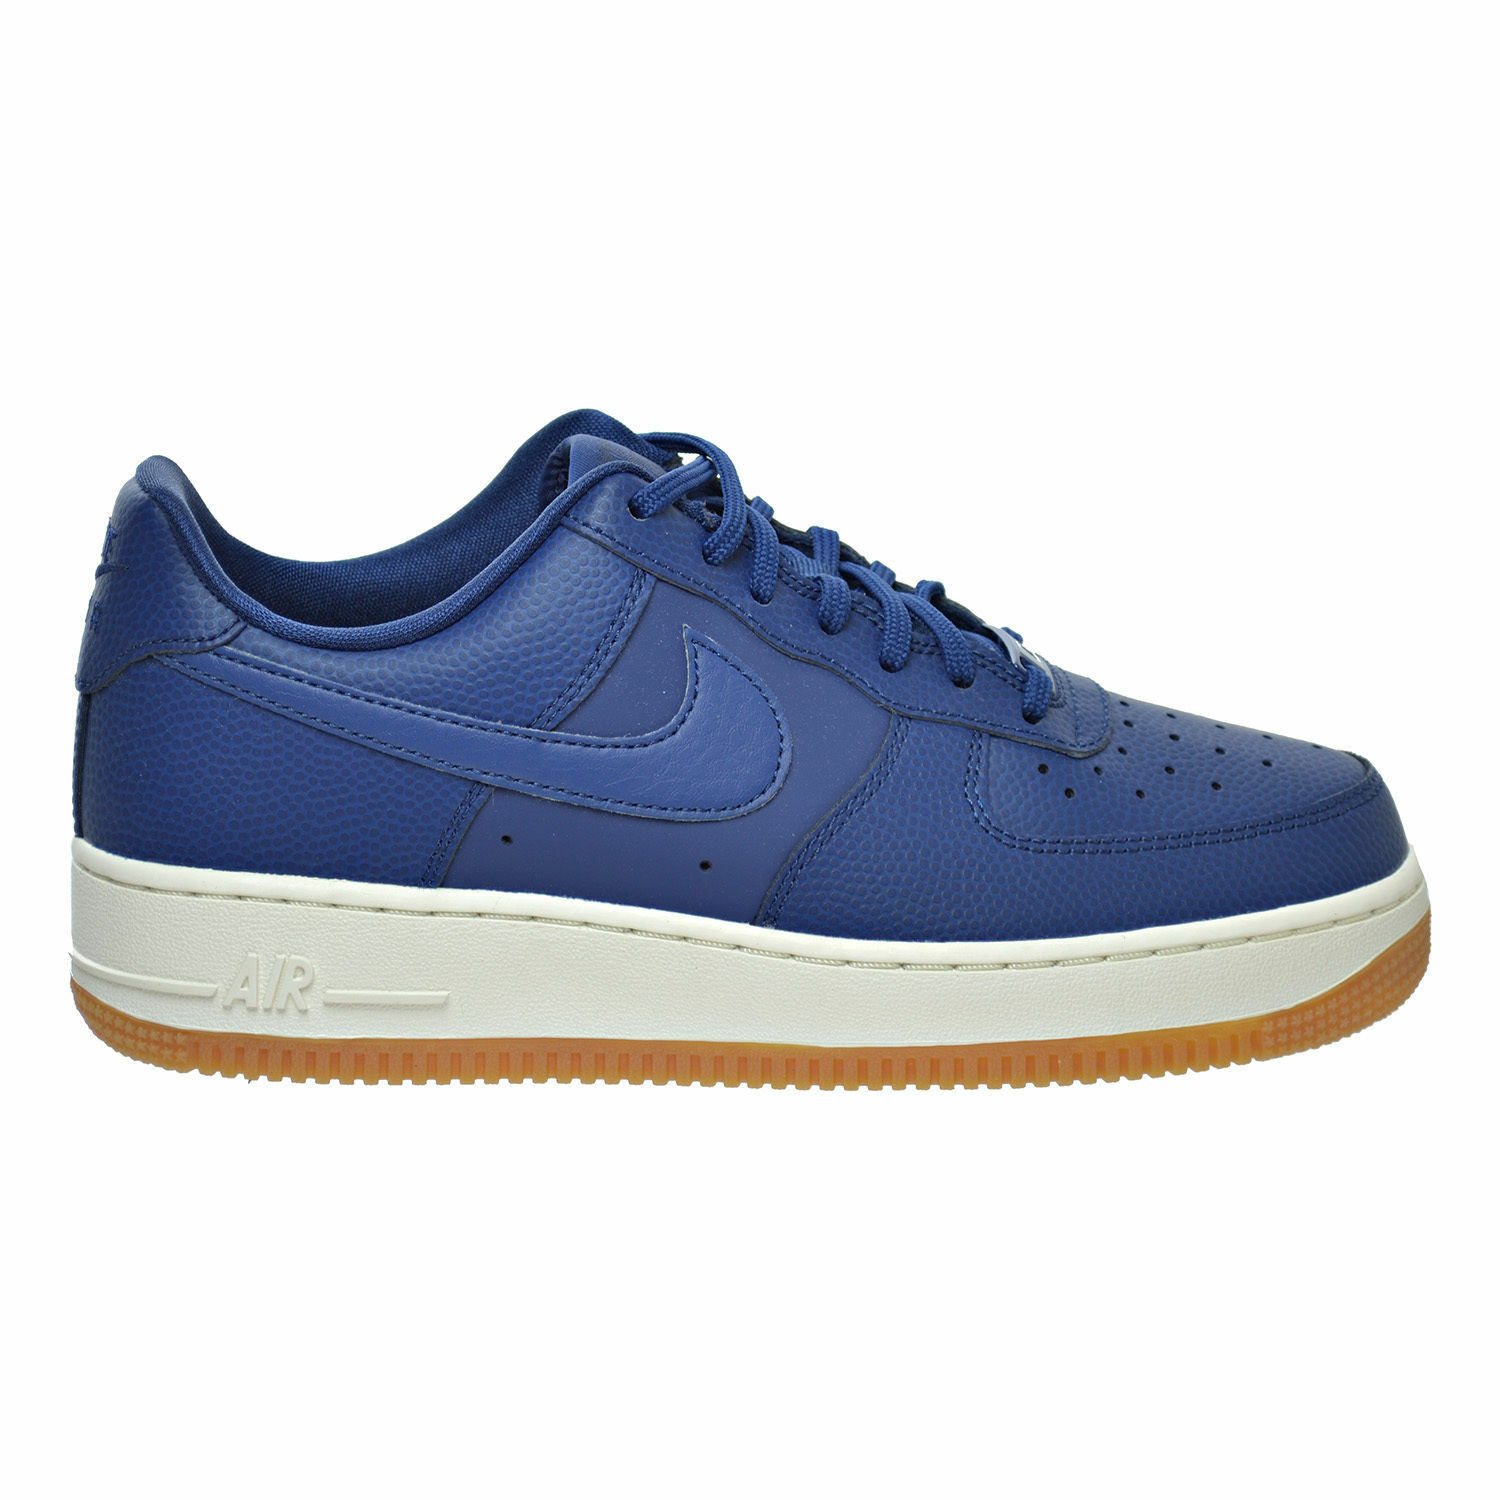 NIKE WOMEN'S AIR FORCE 1 '07 SEASONAL SHOES coastal bue 818594 401